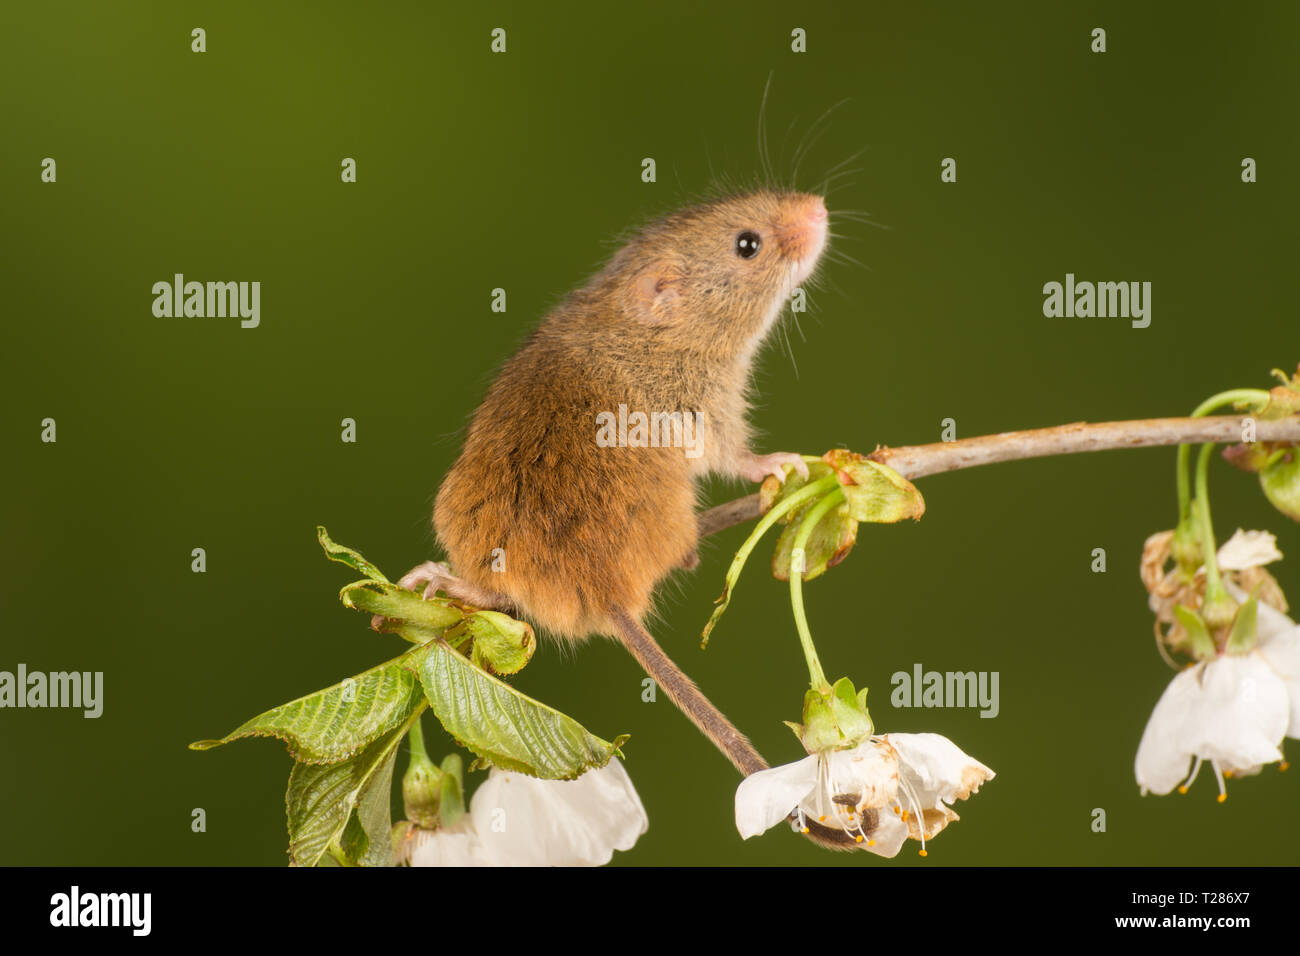 Harvest mouse (Micromys minutus), a small mammal or rodent species. Cute animal. - Stock Image